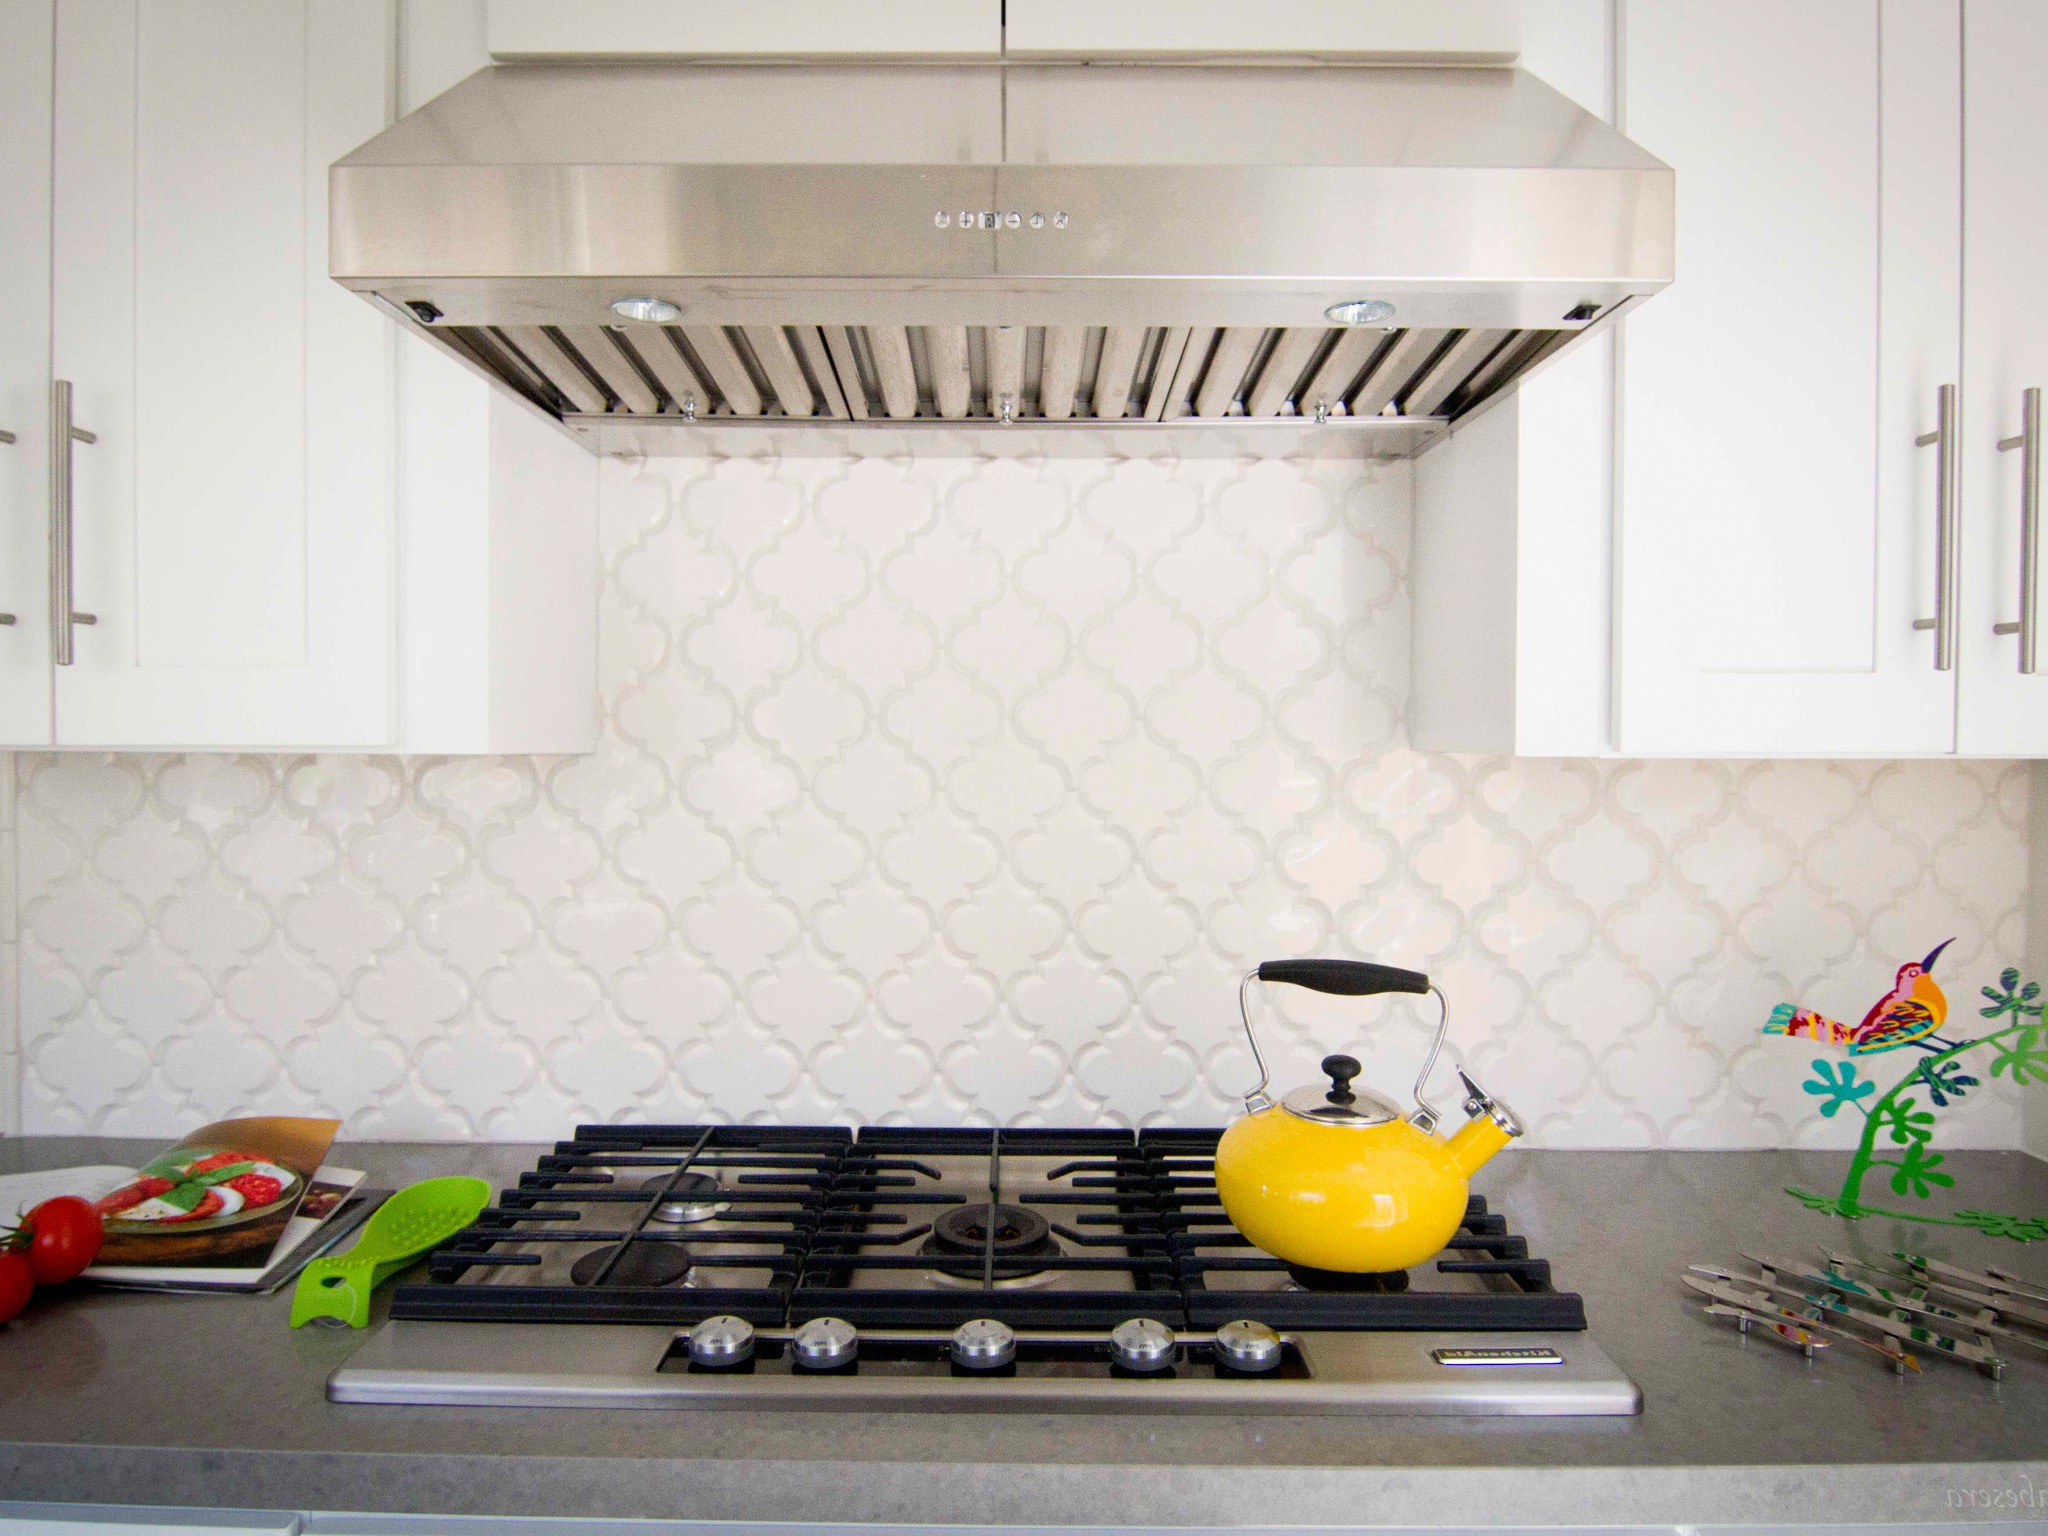 Kitchen Range With White Lantern Tile Backsplash (Image 15 of 32)